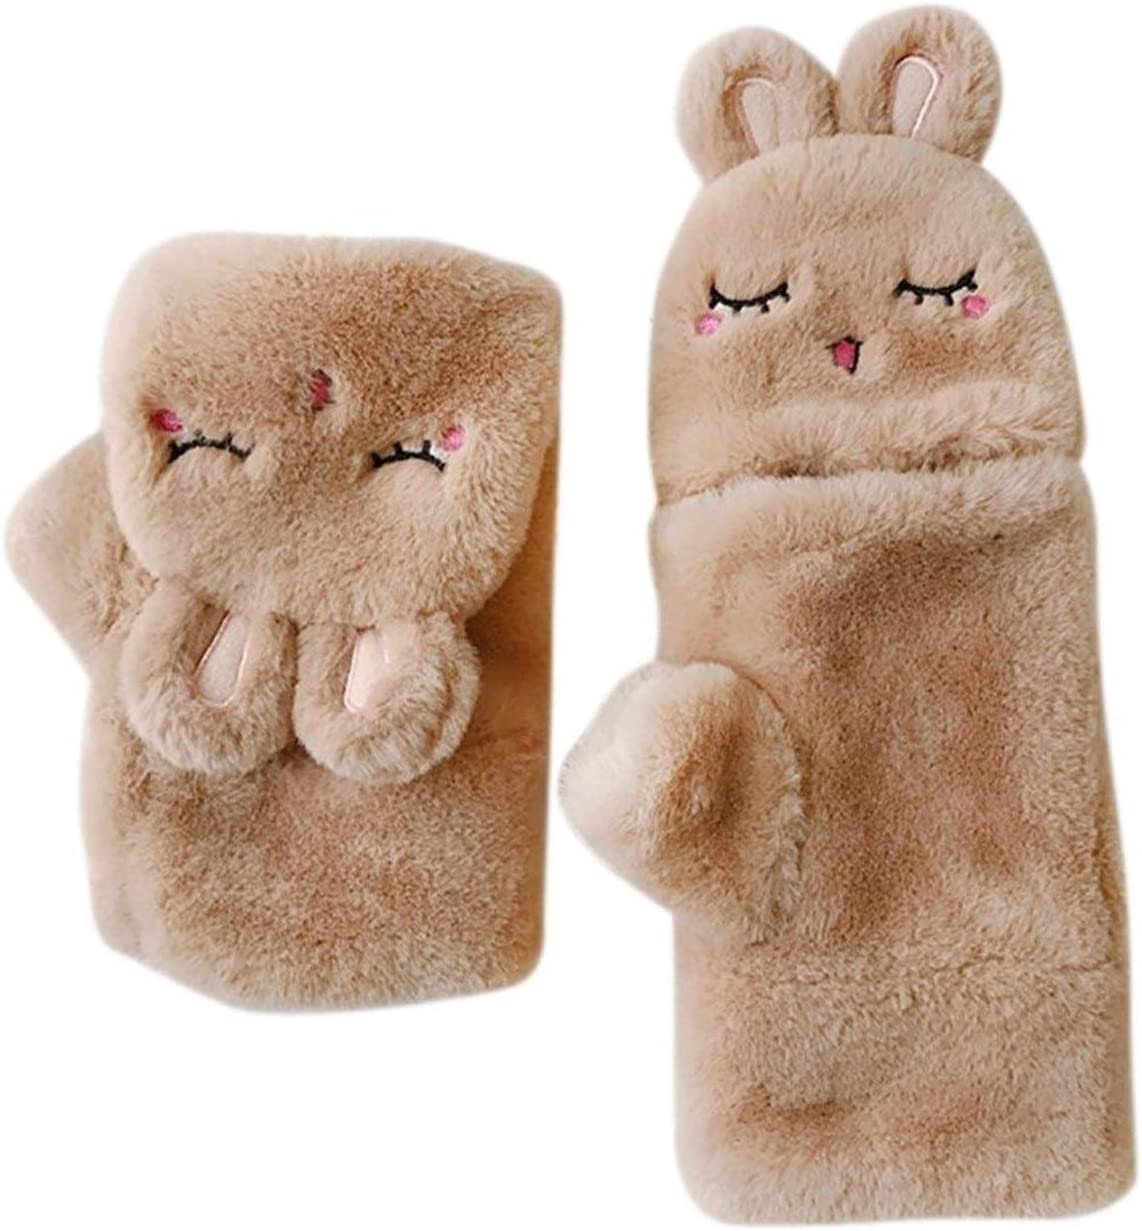 FASGION New Rabbit Plush Gloves Women Girls Cute Lovely Animal Warm Flip Over Thickening Warm Winter Gloves (Color : Brown, Size : One Size)